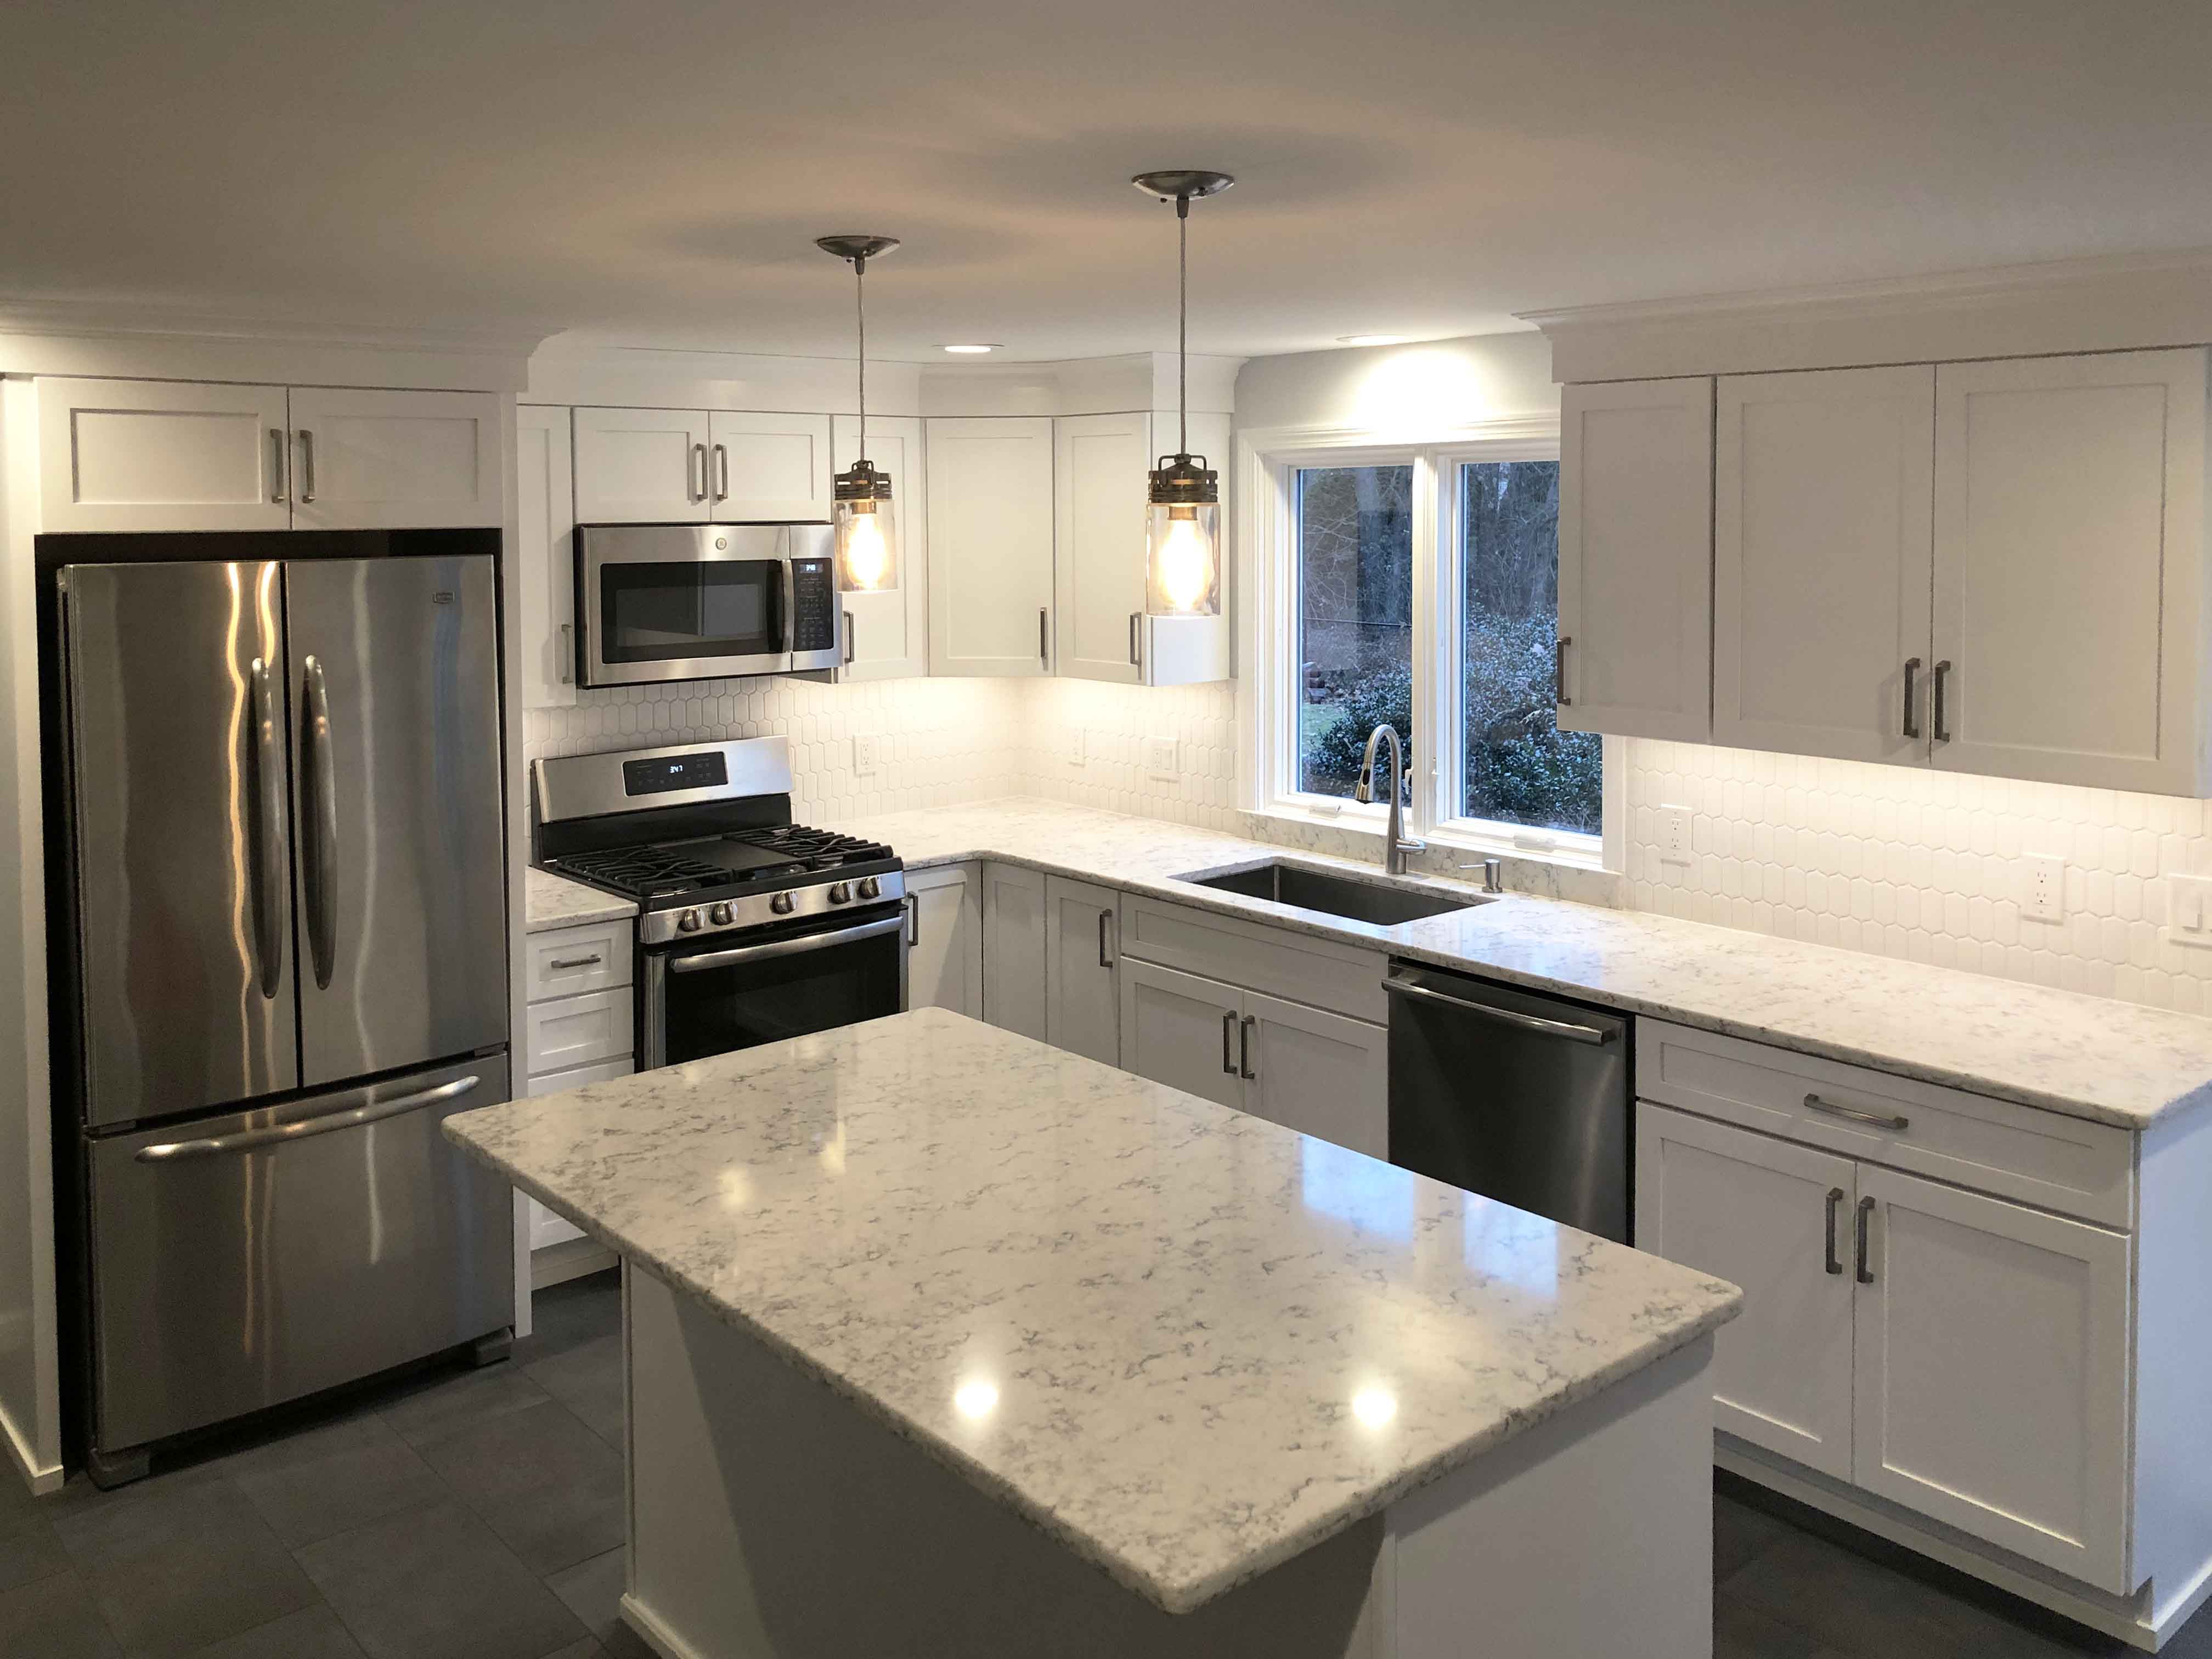 Legacy Construction installs a Medallion Kitchen in Longmeadow, MA